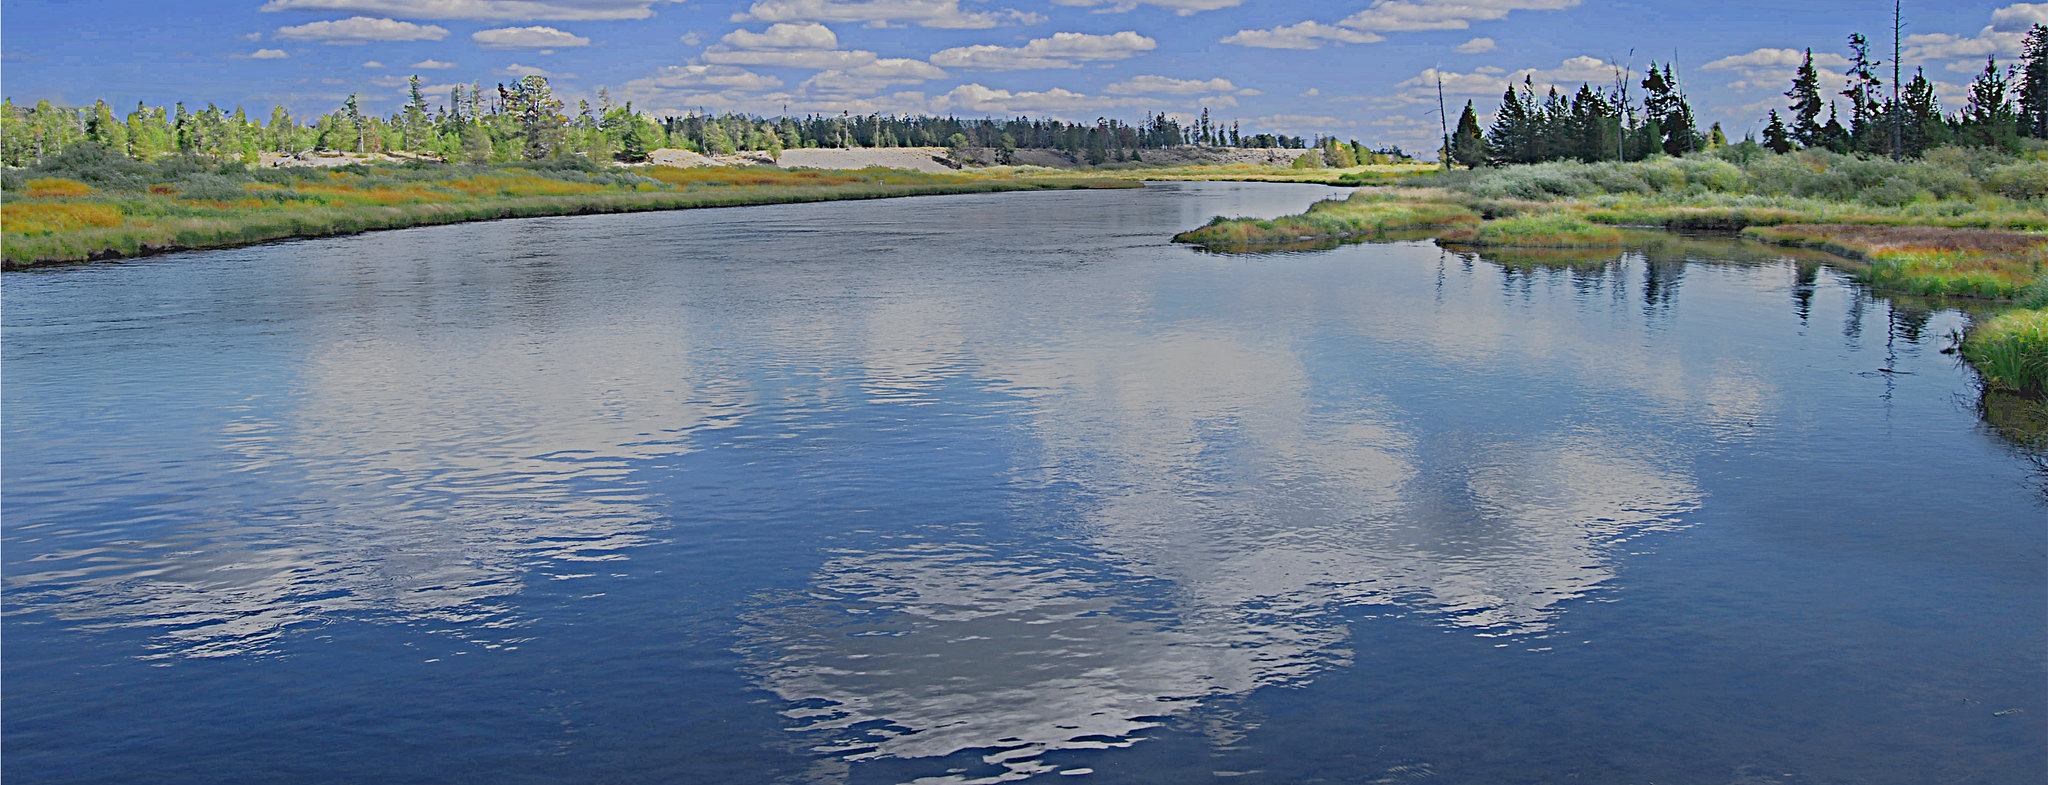 Fly fishing in yellowstone national park just so you know for Fly fishing yellowstone river